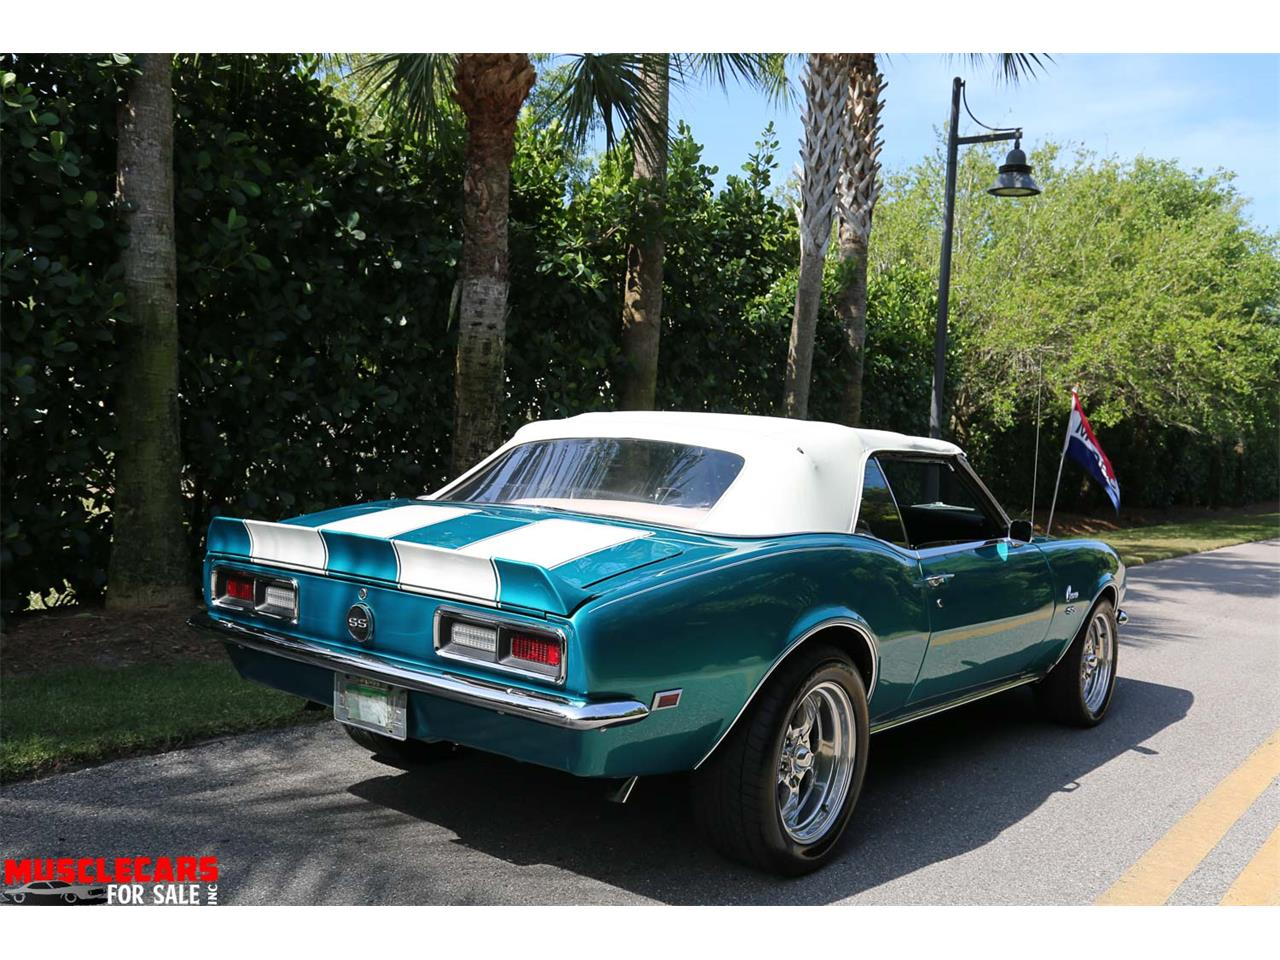 Large Picture of '68 Camaro SS located in Florida Offered by Muscle Cars For Sale Inc. - PNWZ